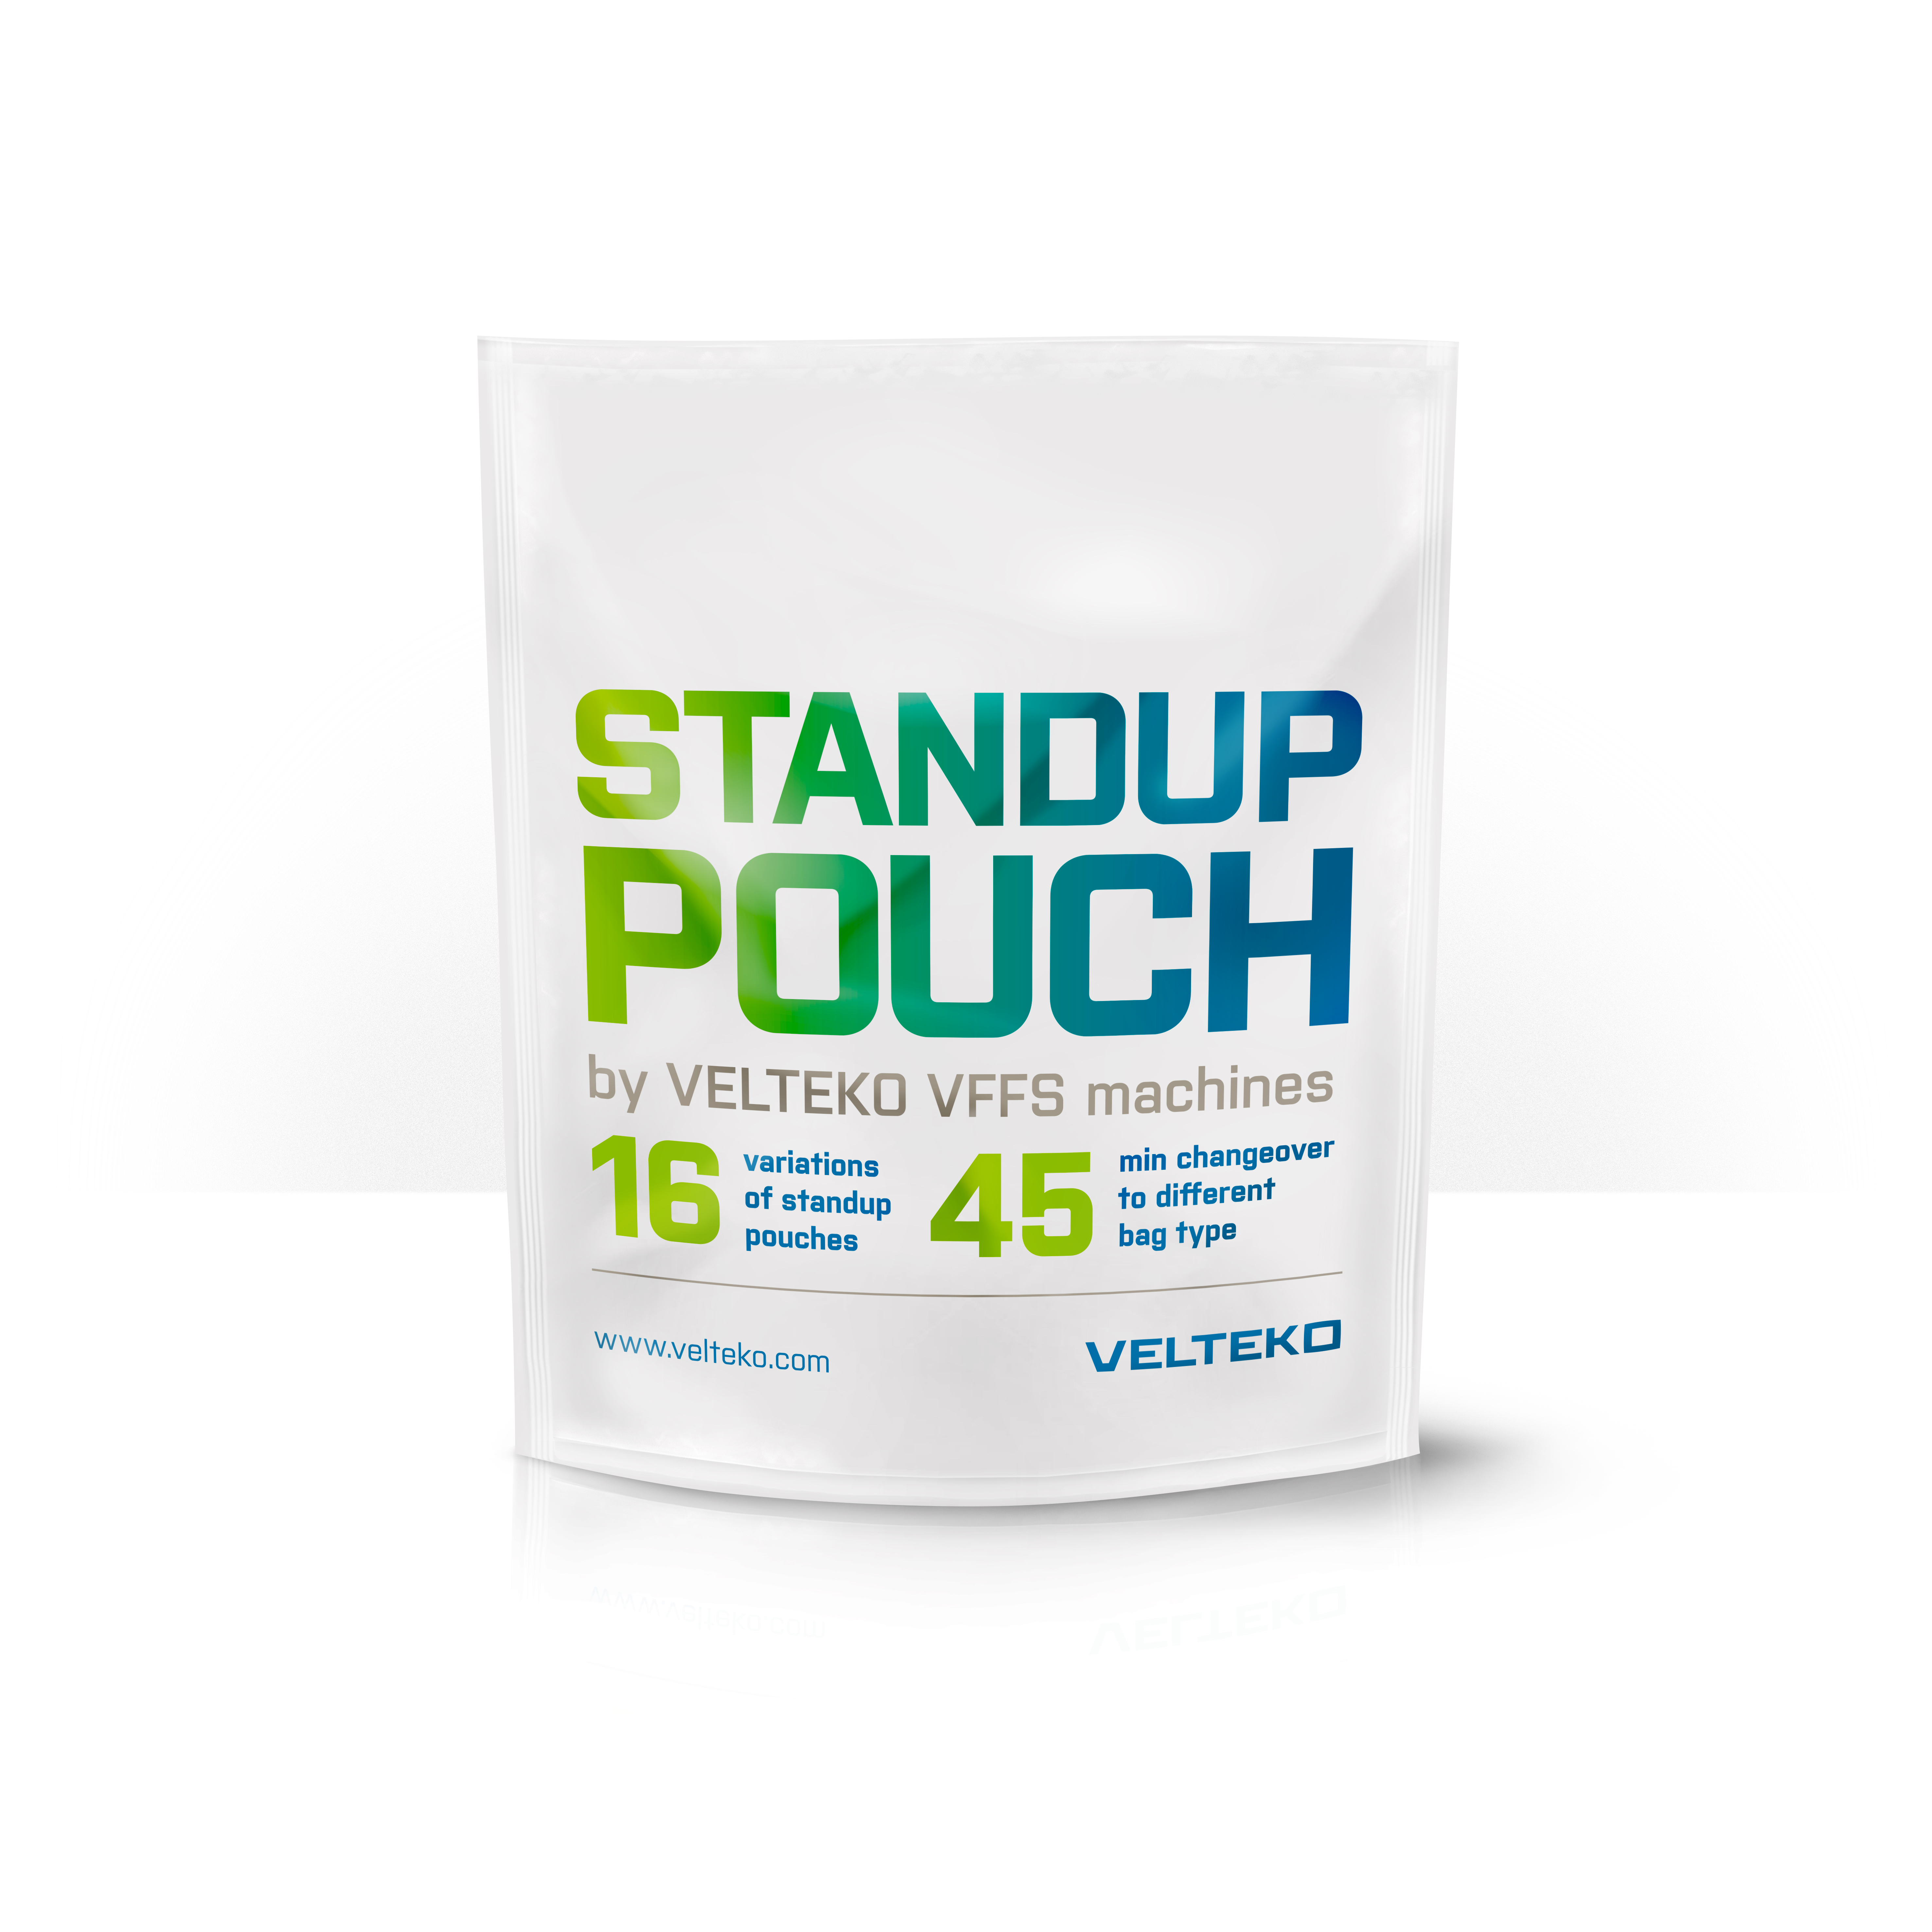 Standup pouches created on Velteko vertical packaging machines